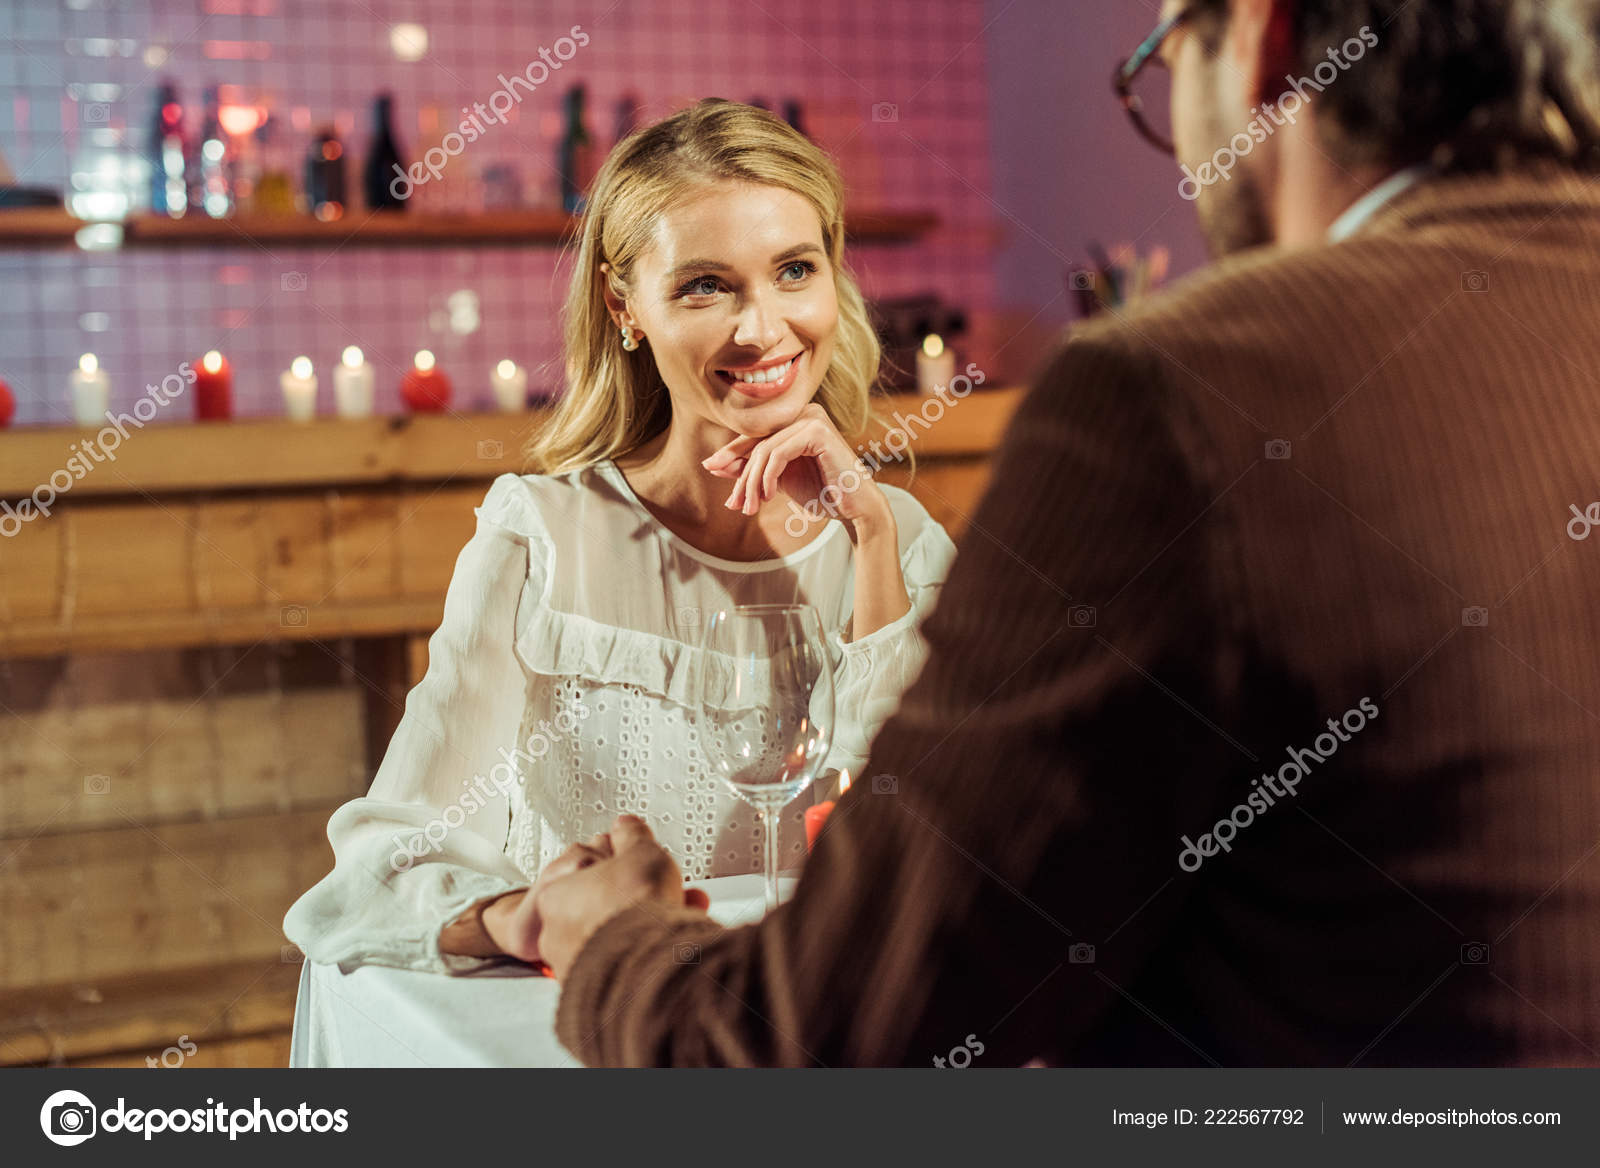 dating a woman with a boyfriend